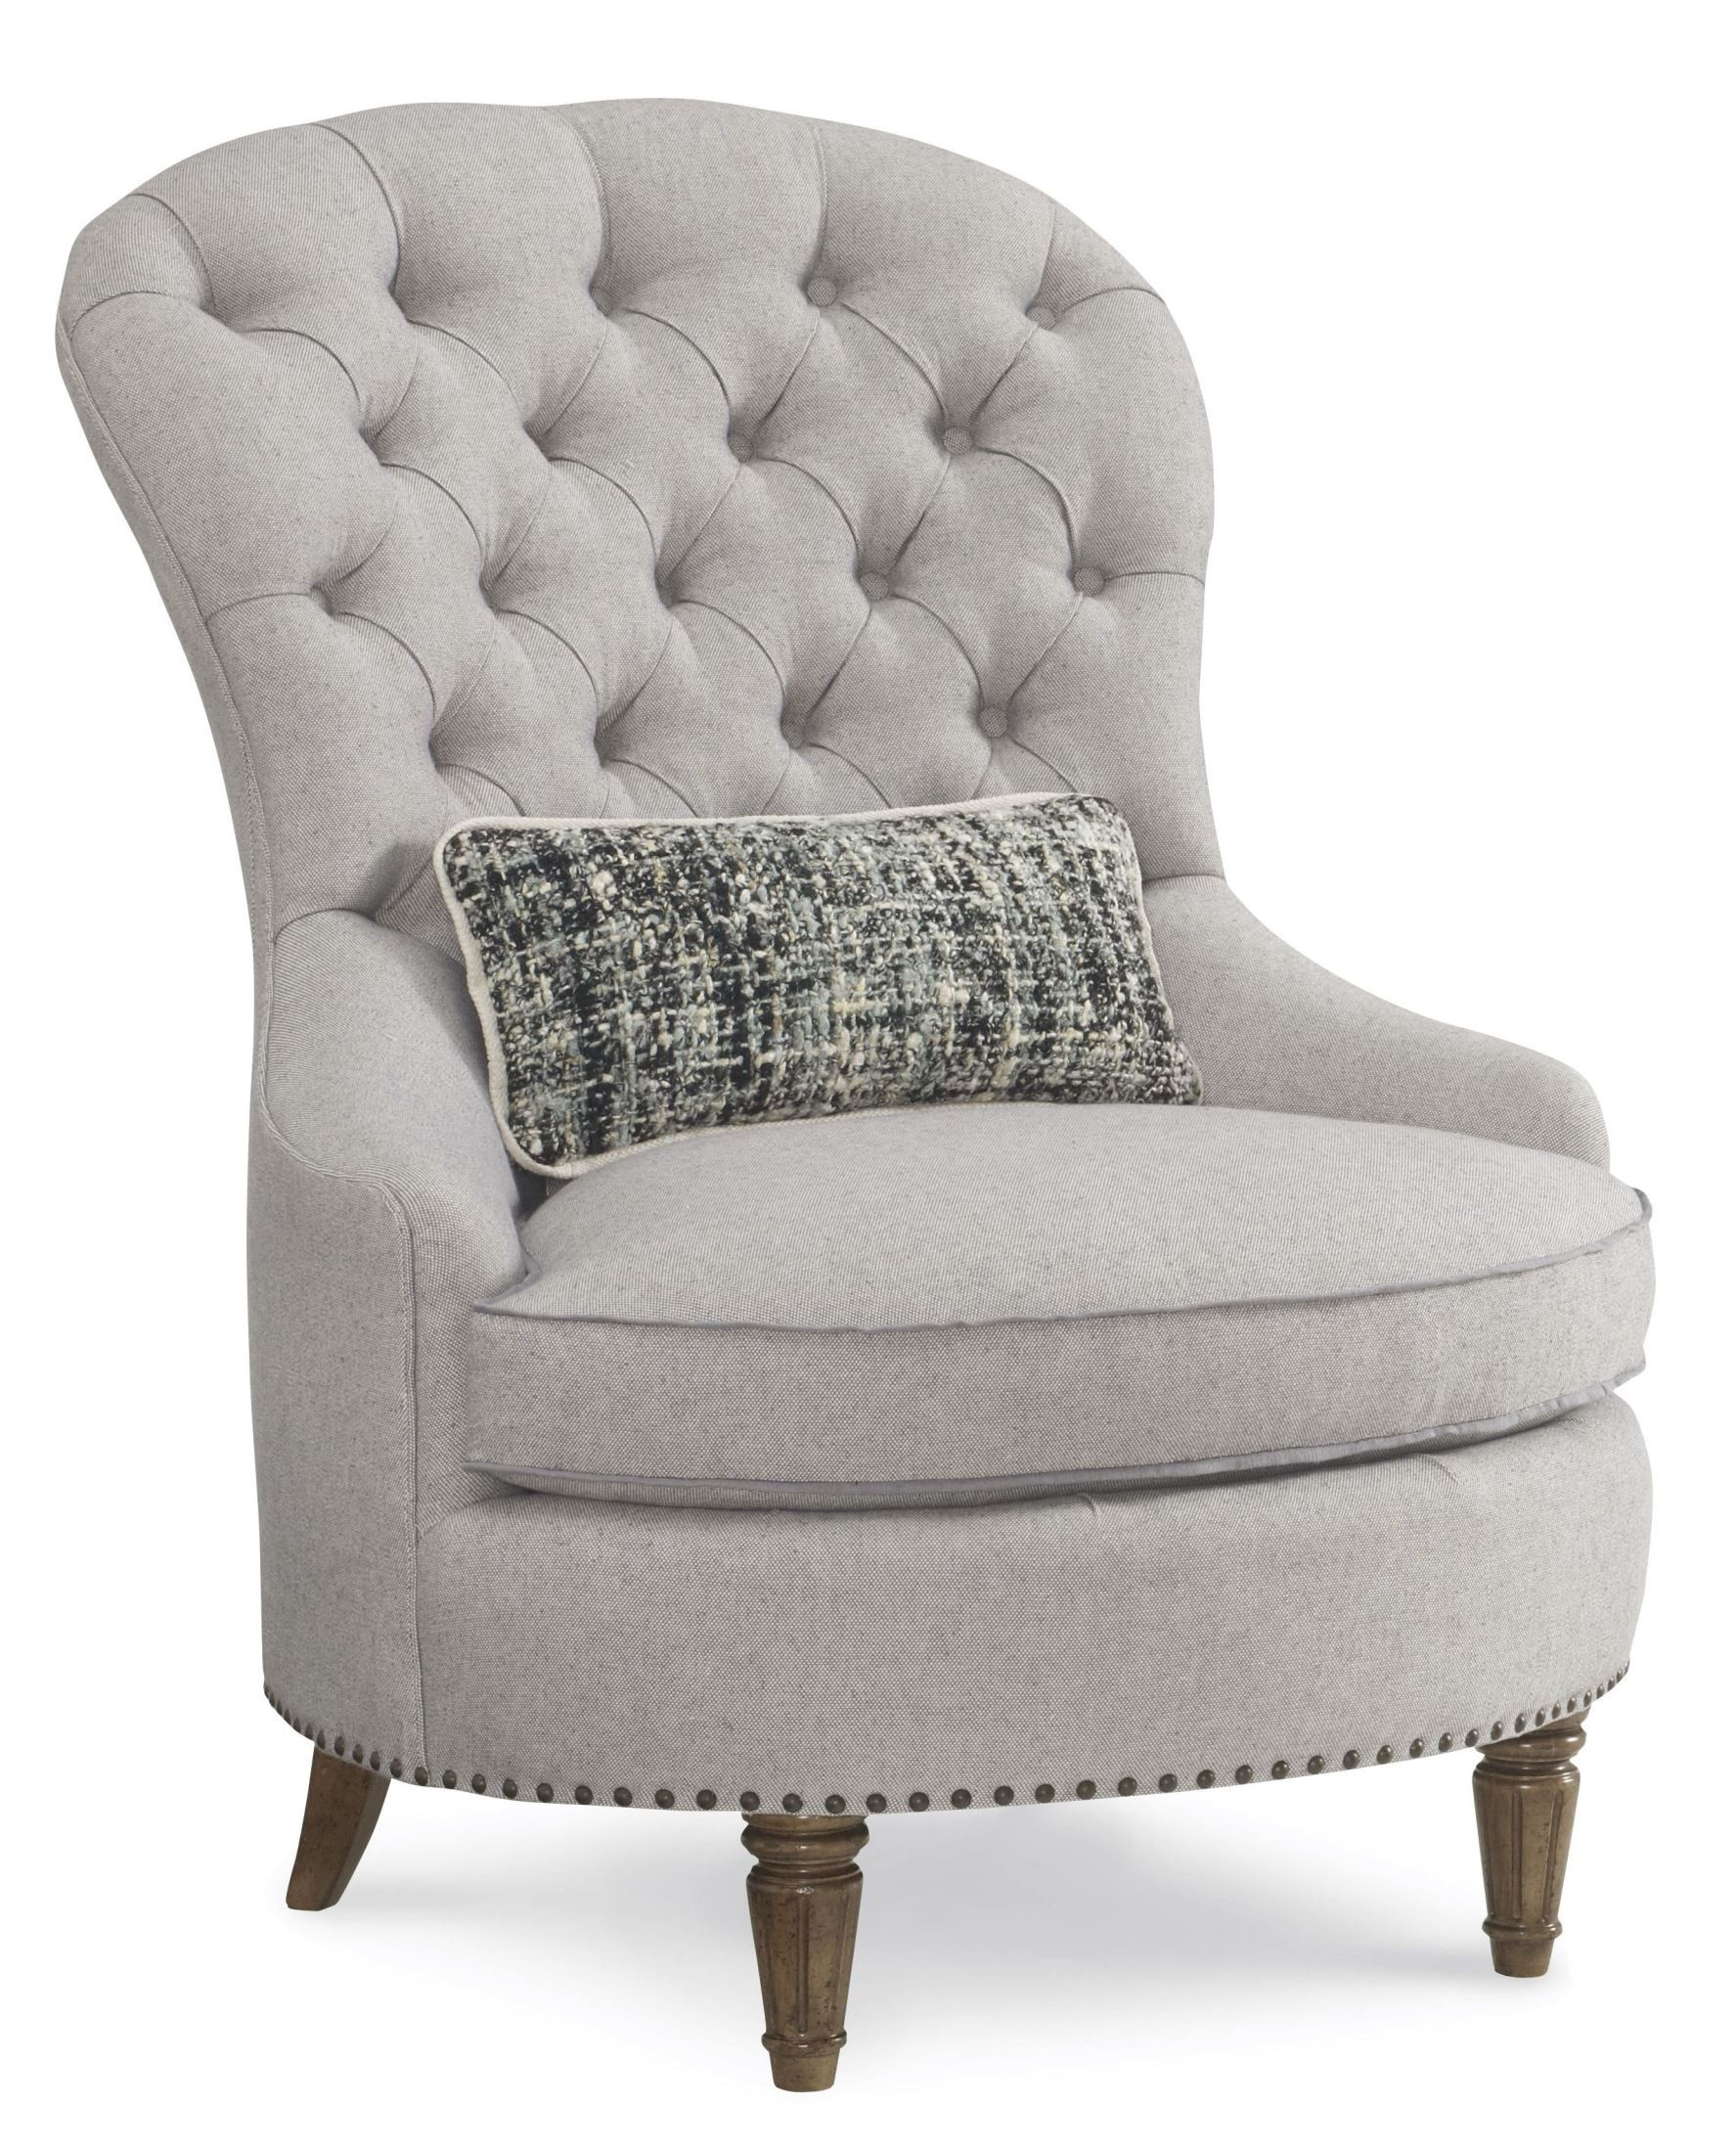 Upholstered Accent Chairs: Collection One Upholstered Christiansen Tufted Accent